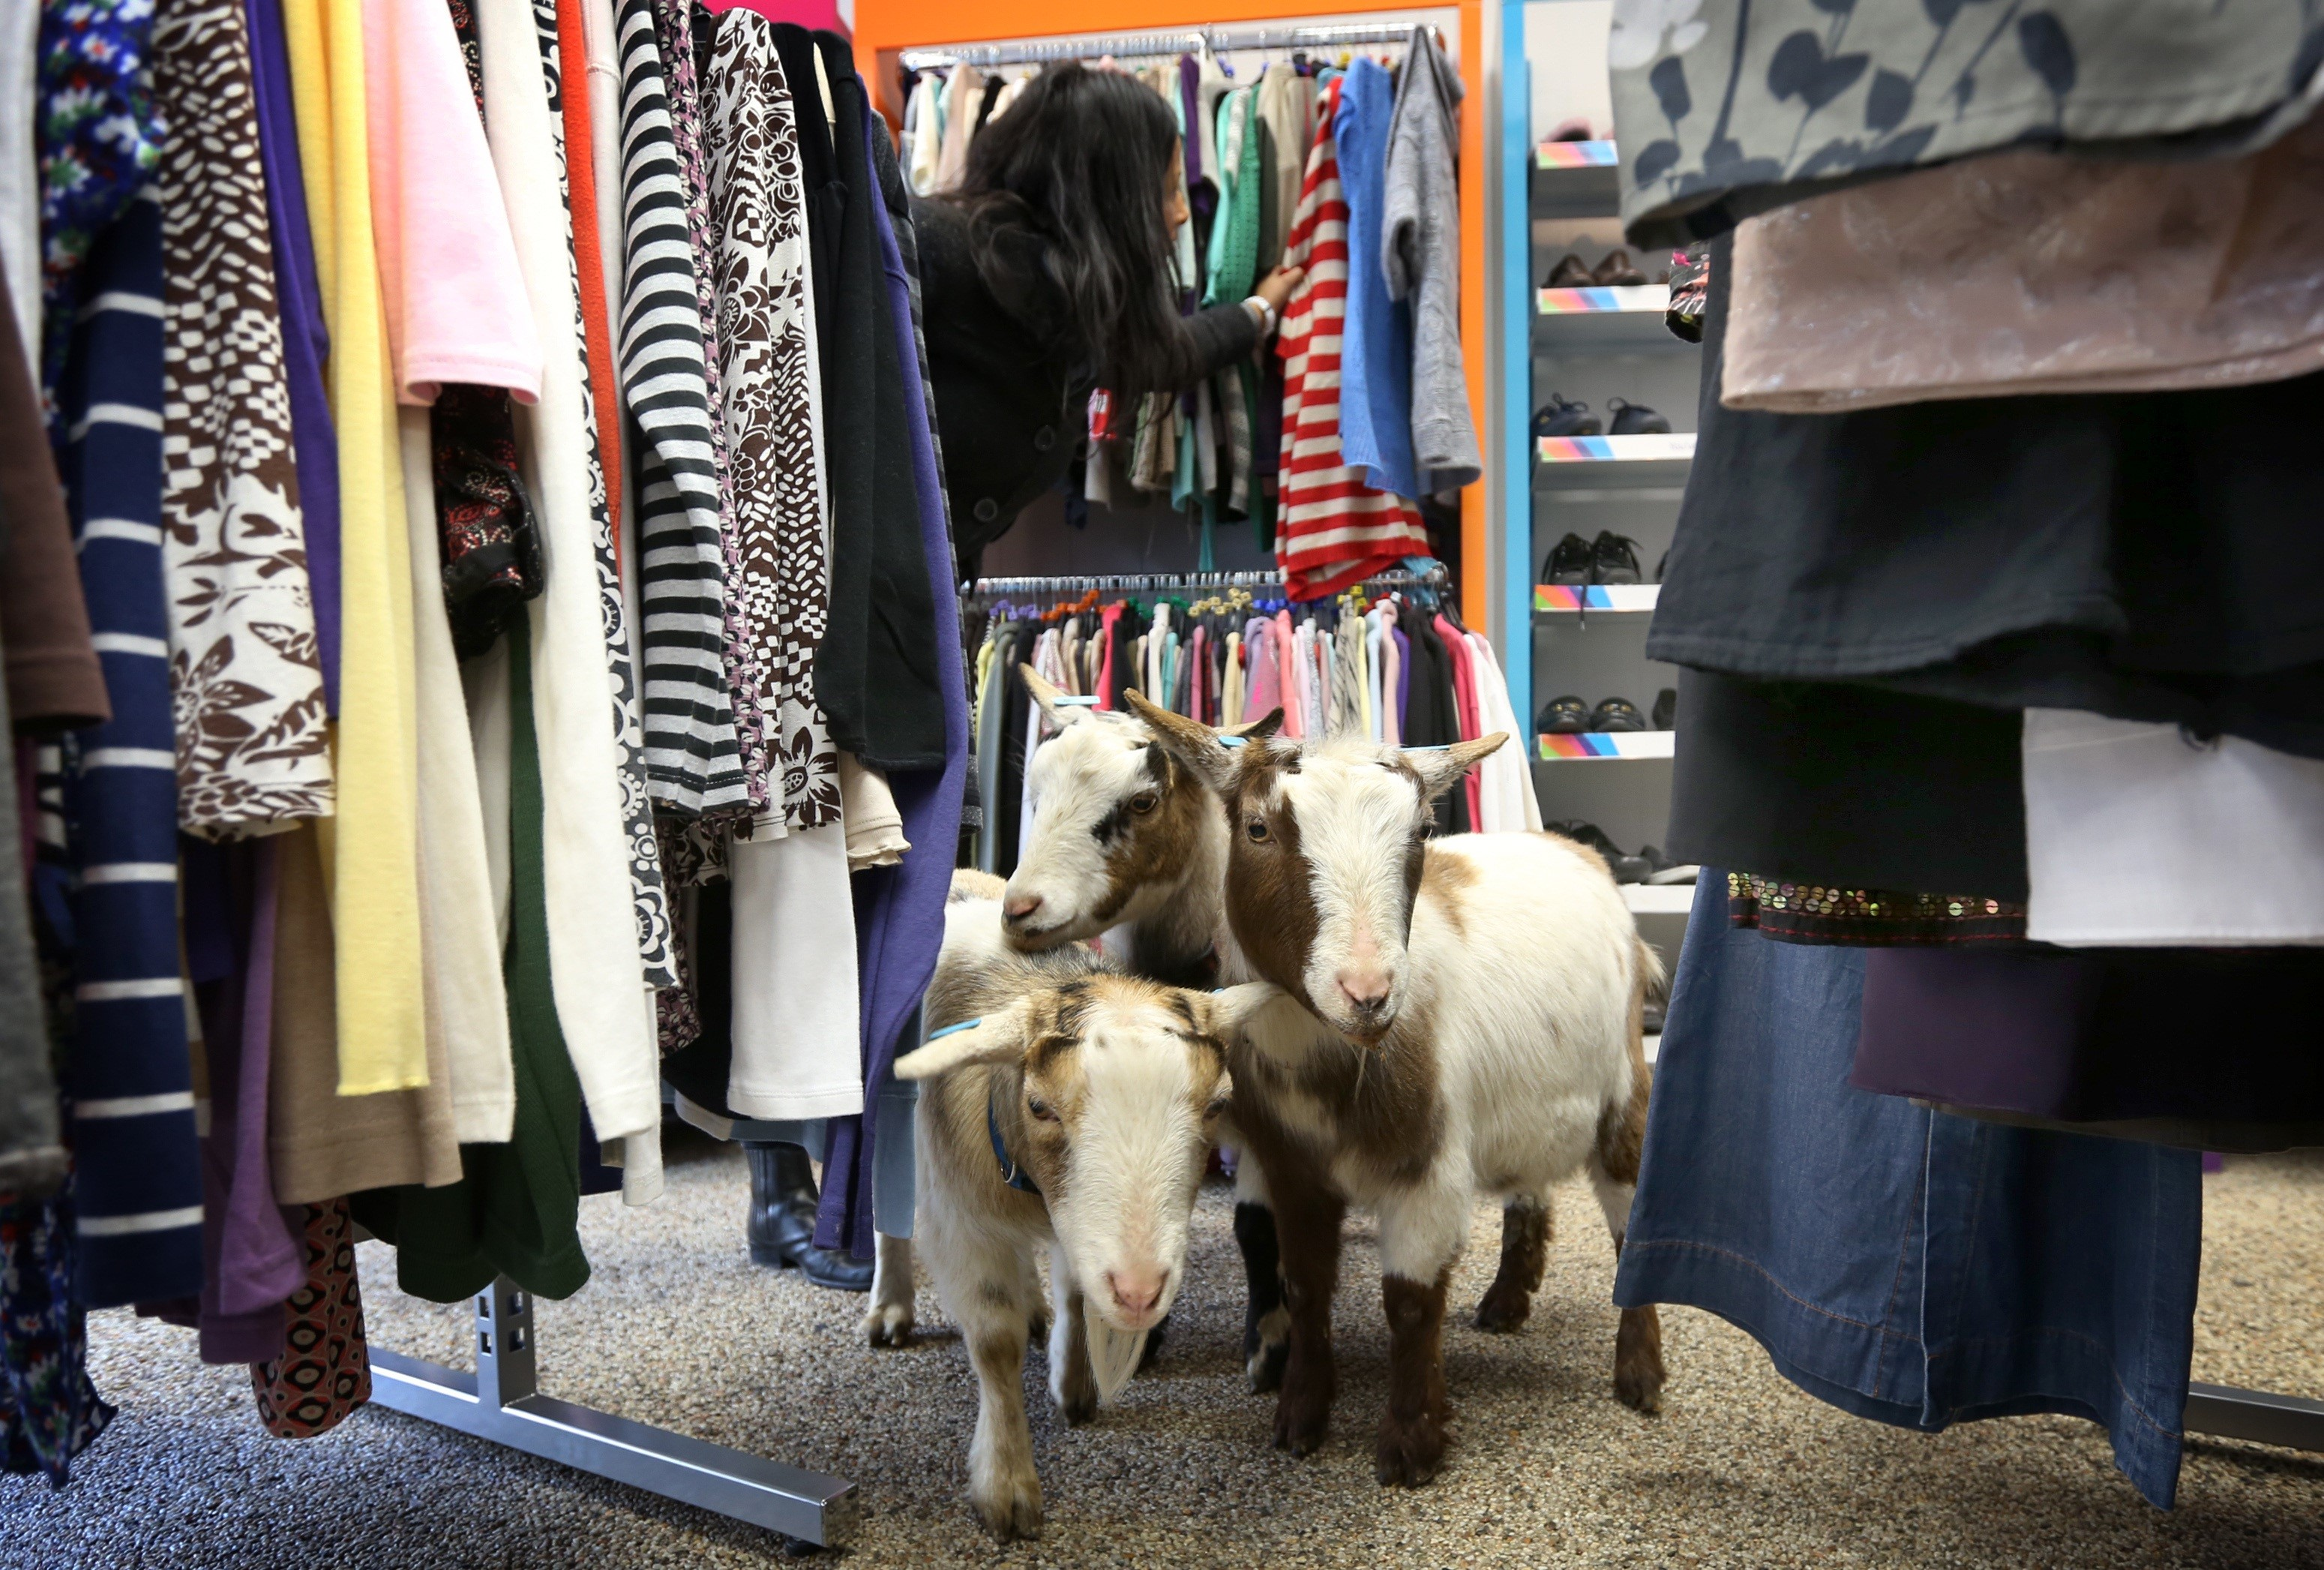 Goats stand in an Age Uk charity shop.